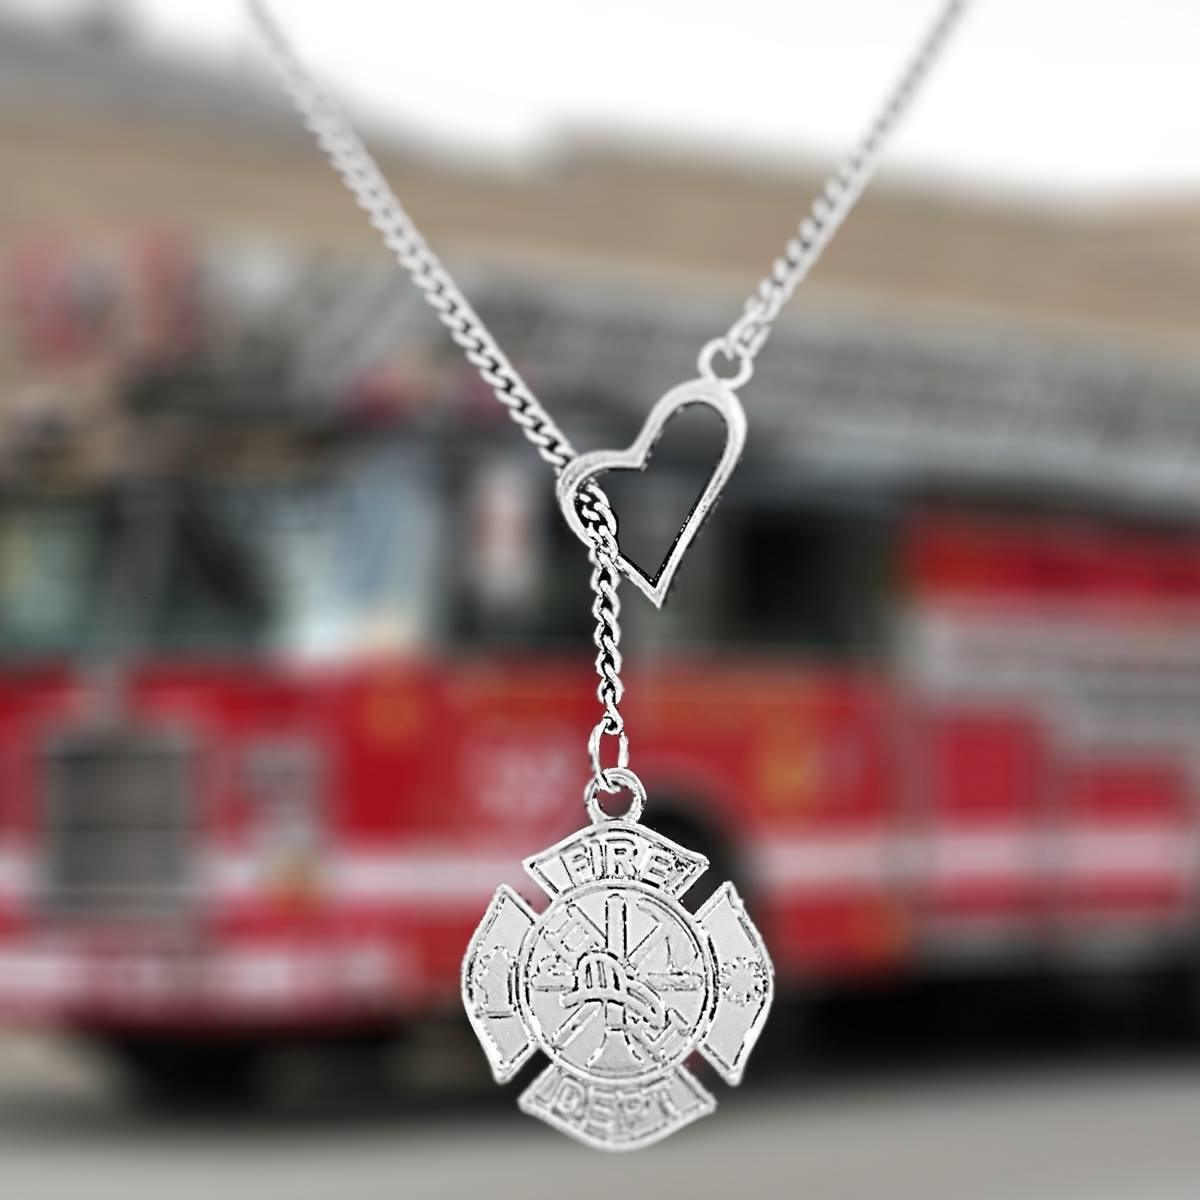 pin support firefighter fighter fire pendant maltese firefighters cross necklaces i split